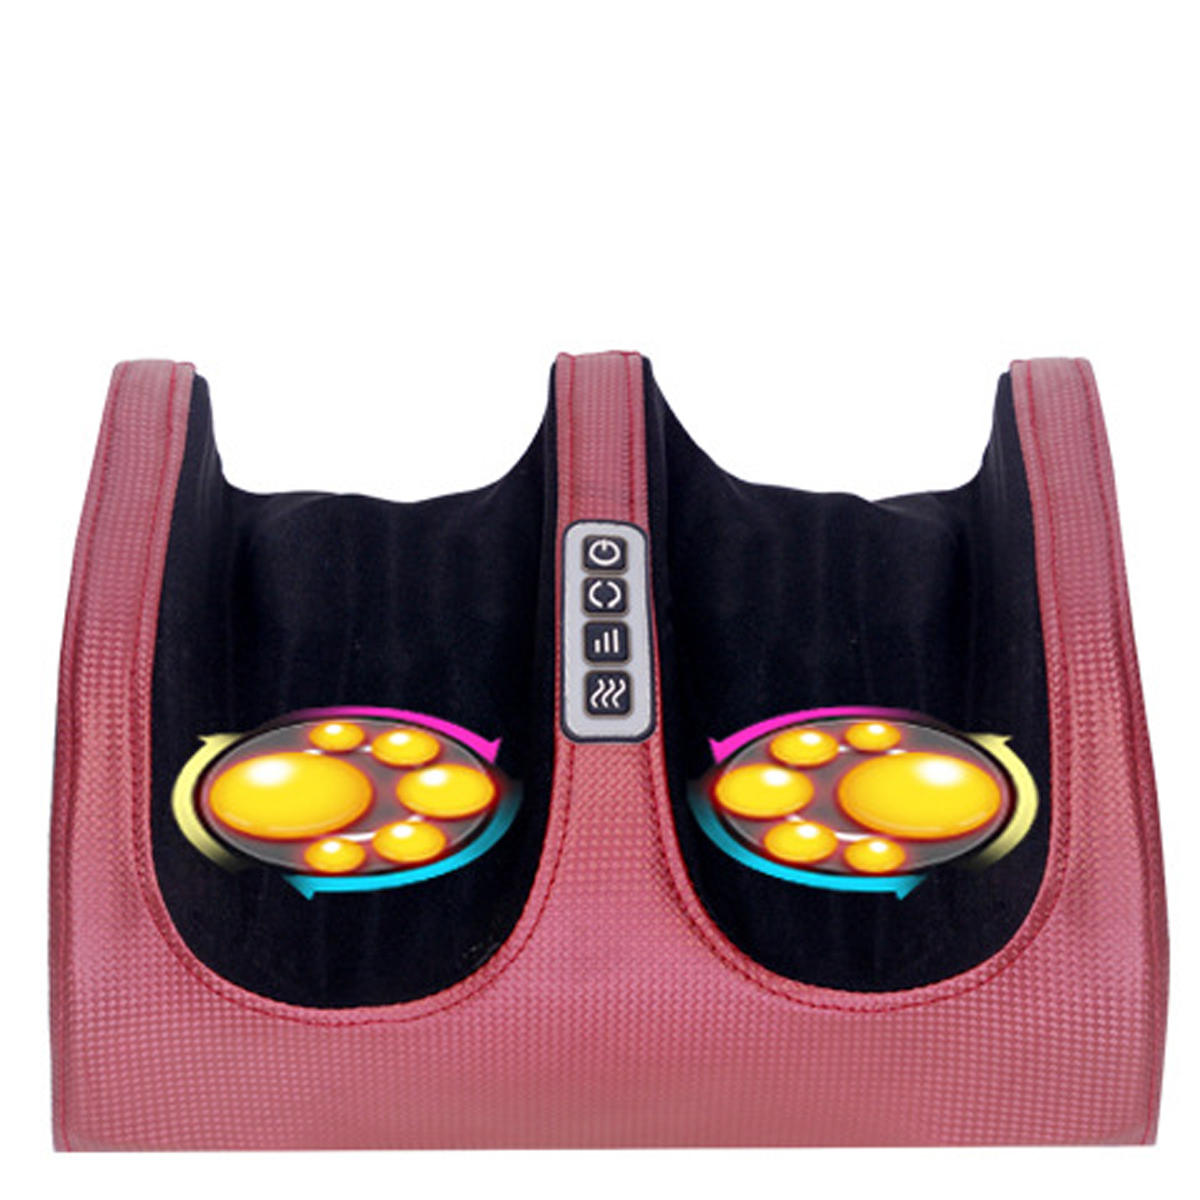 Foot Massager Machine with Heat Electric Feet Massager Plantar Fasciitis Deep Kneading Foot Massages Muscle Relief Nerve Pain Therapy Electric Massager